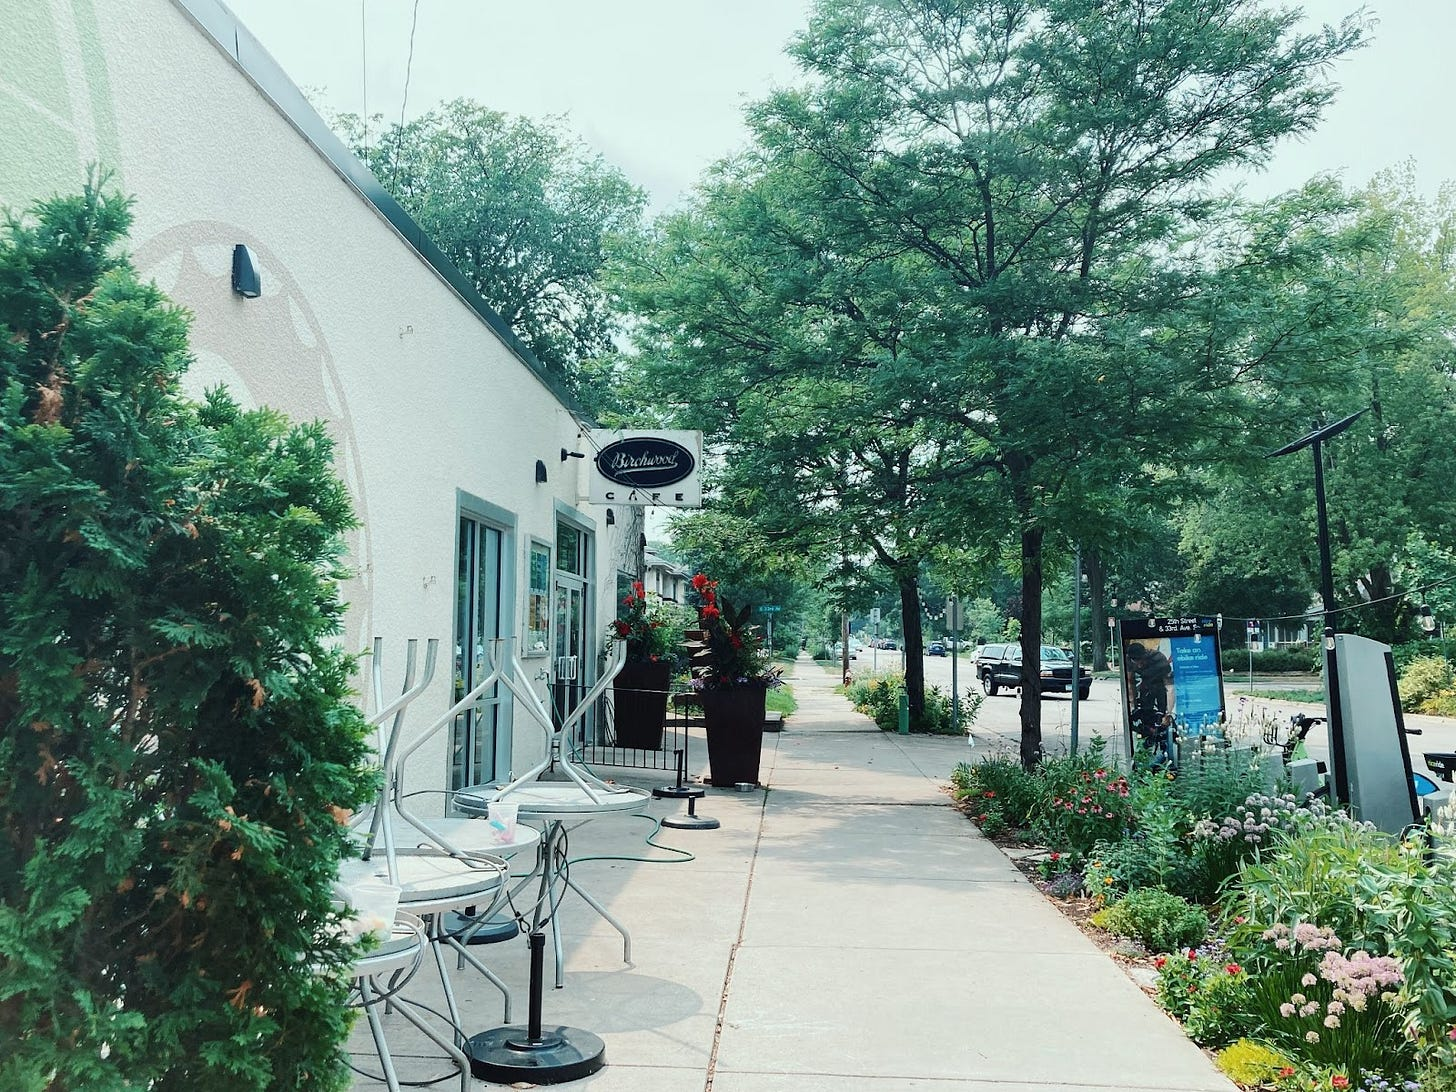 """the front of birchwood cafe, a white building with a white and black sign reading """"Birchwood Cafe"""", surrounded by lush green trees and bushes, and metal chairs and tables stacked to the side"""